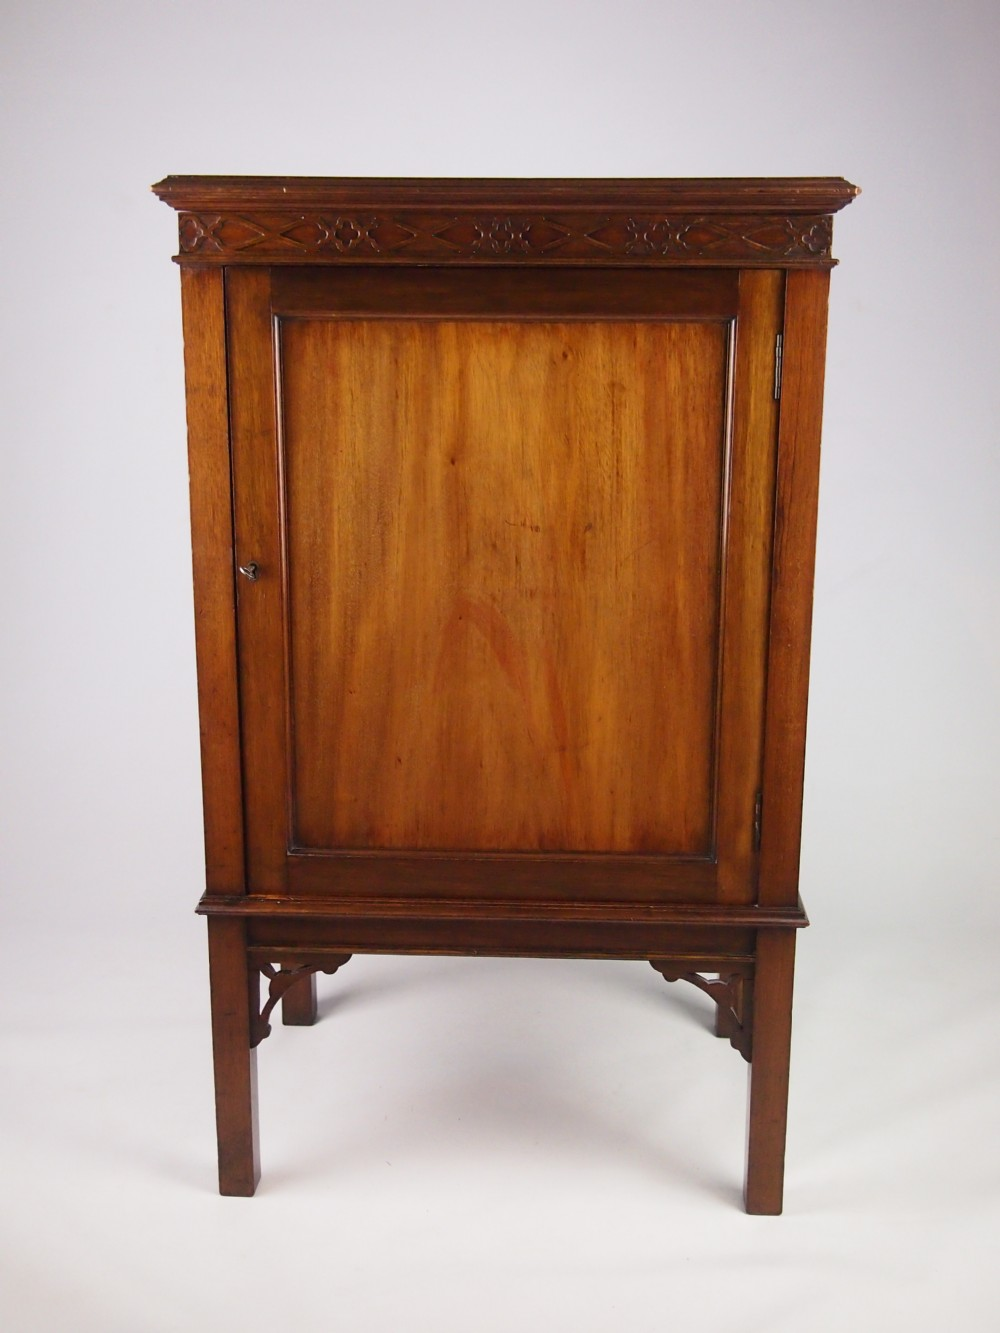 antique edwardian mahogany hall cupboard drinks cabinet - Antique Edwardian Mahogany Hall Cupboard / Drinks Cabinet 256498